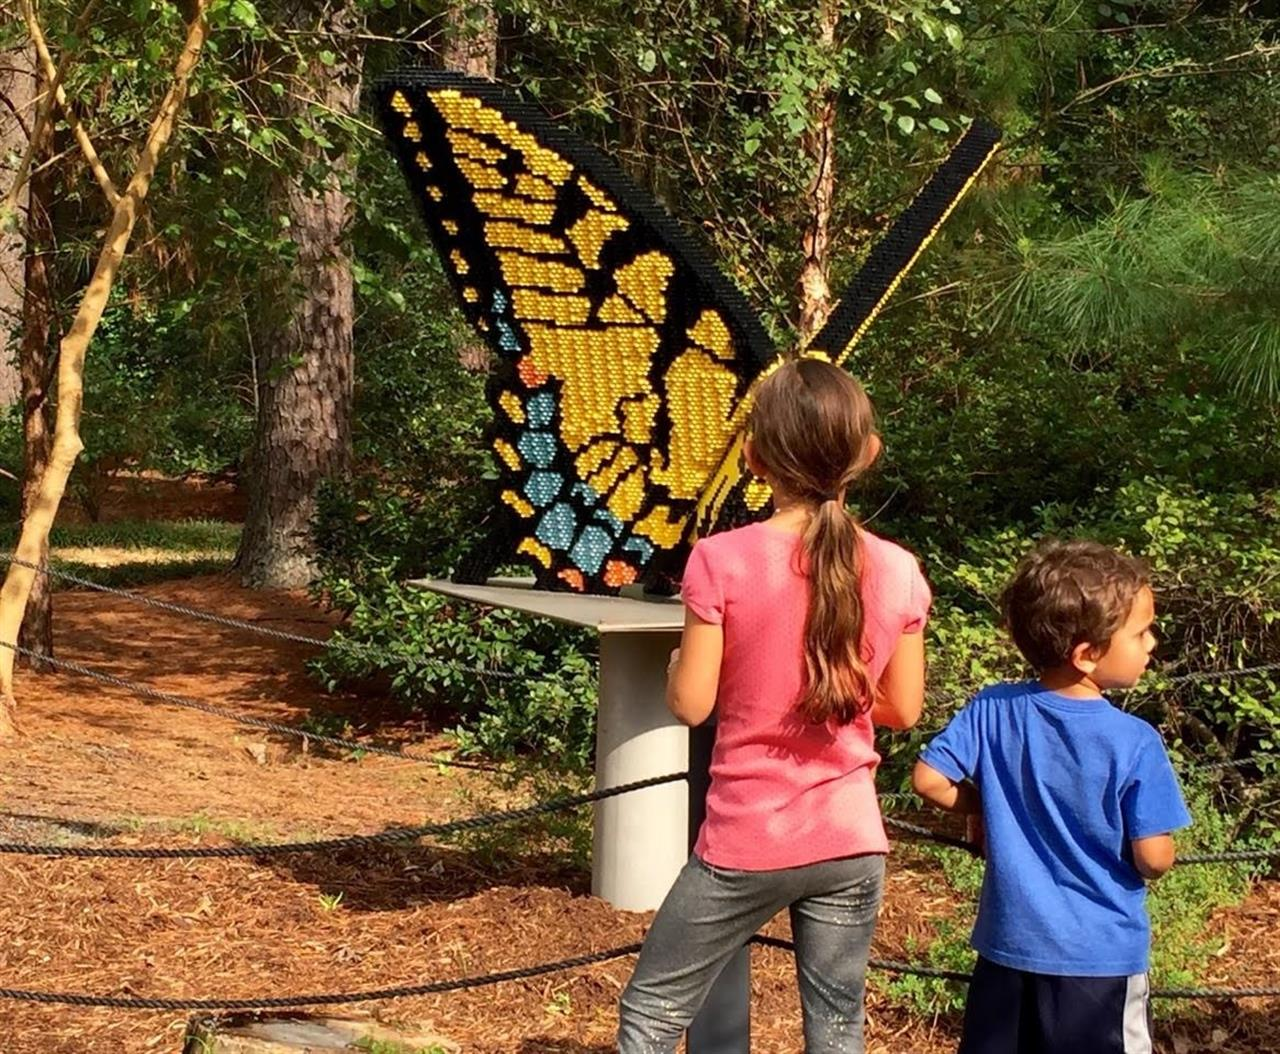 Giant Lego Exhibit hosted by Cape Fear Botanical Garden in Fayetteville, North Carolina.  Submitted by Lee McMillan